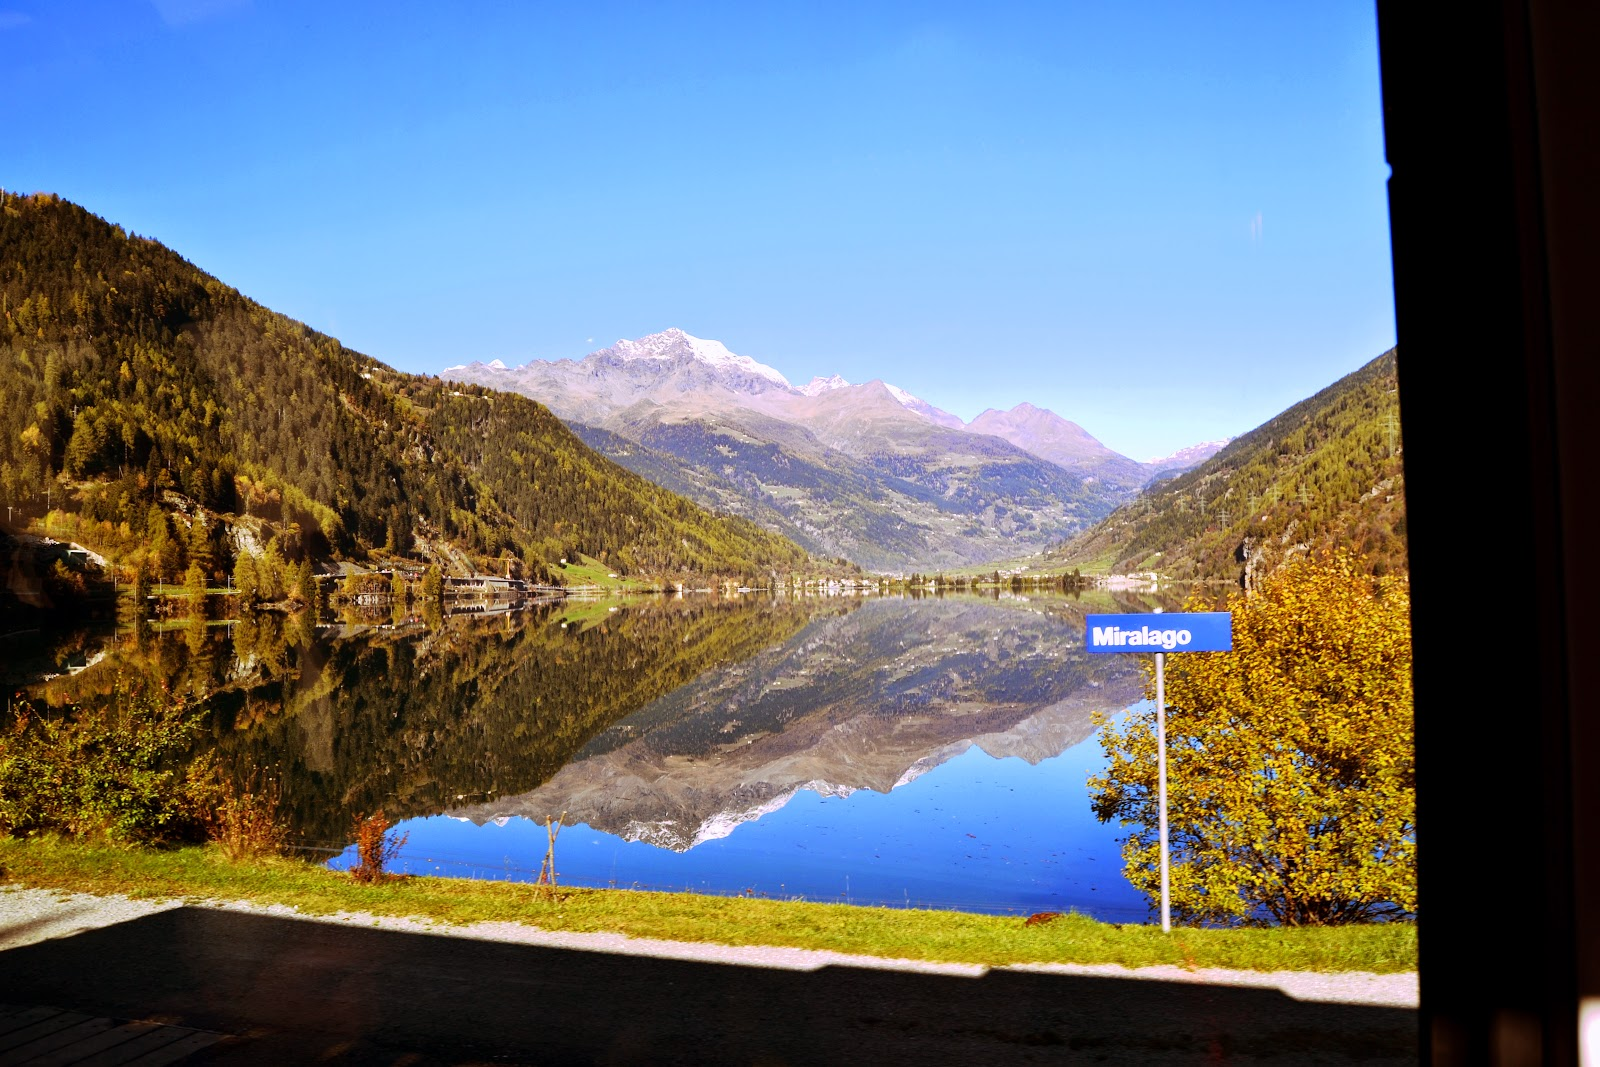 Picture perfect scene of Lake Miralago near St.Moritz